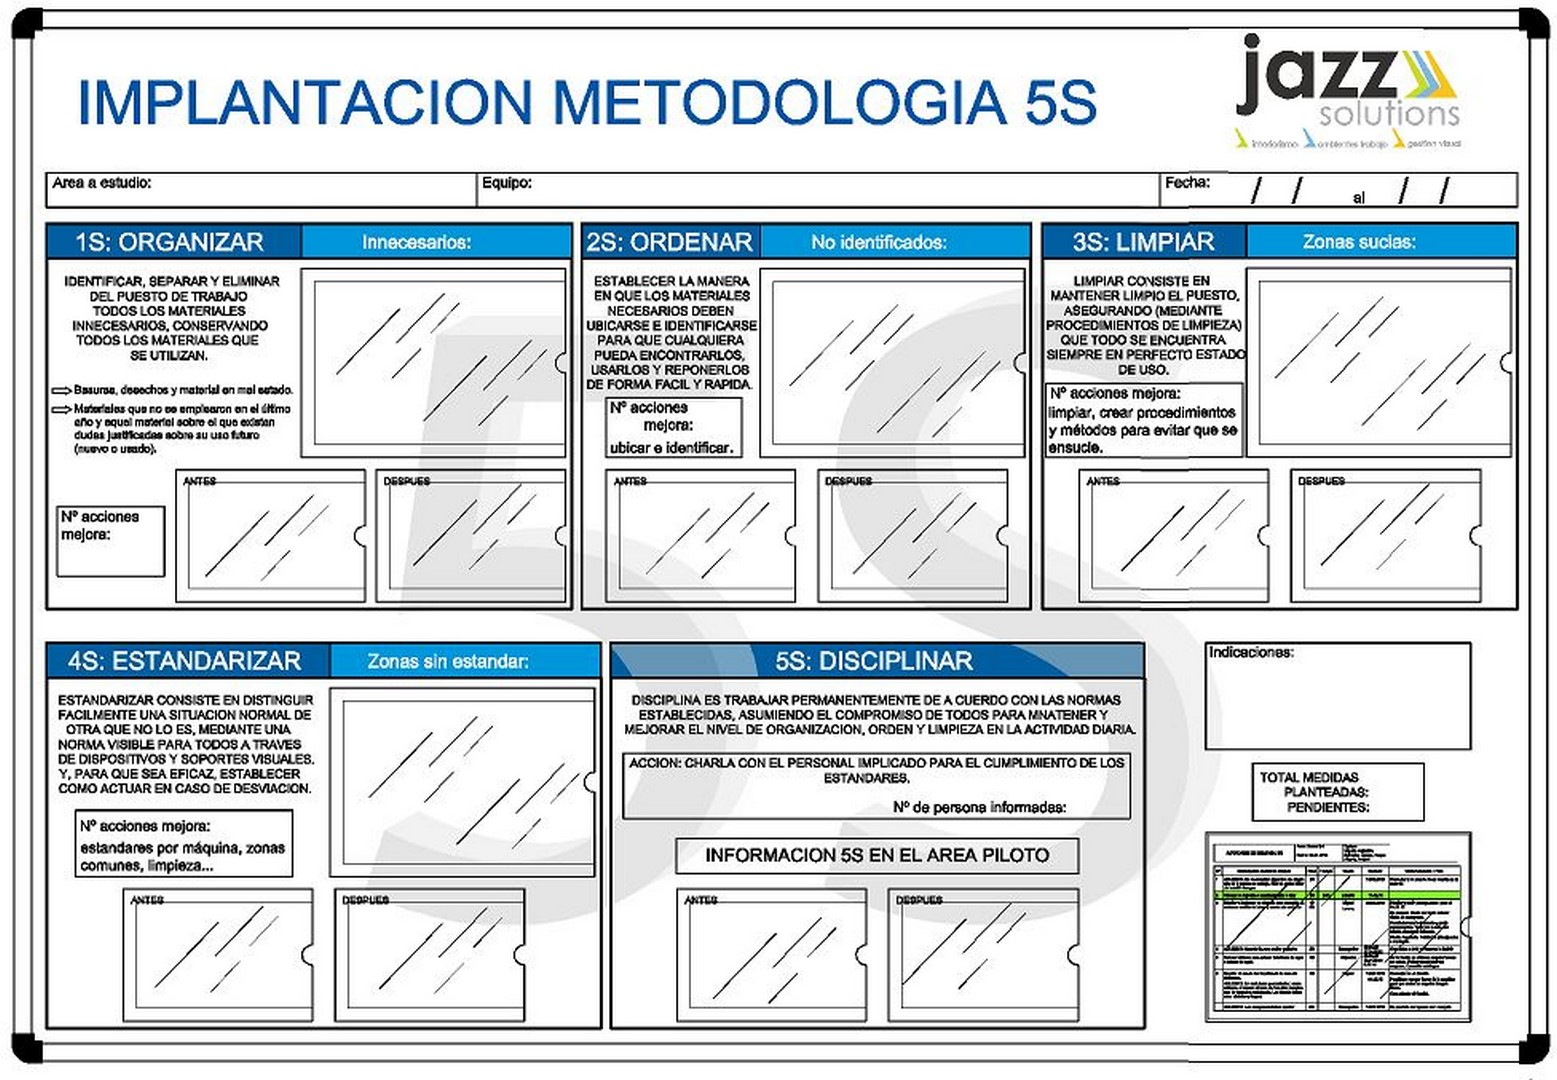 Gestion Visual - Jazz Solutions (1)